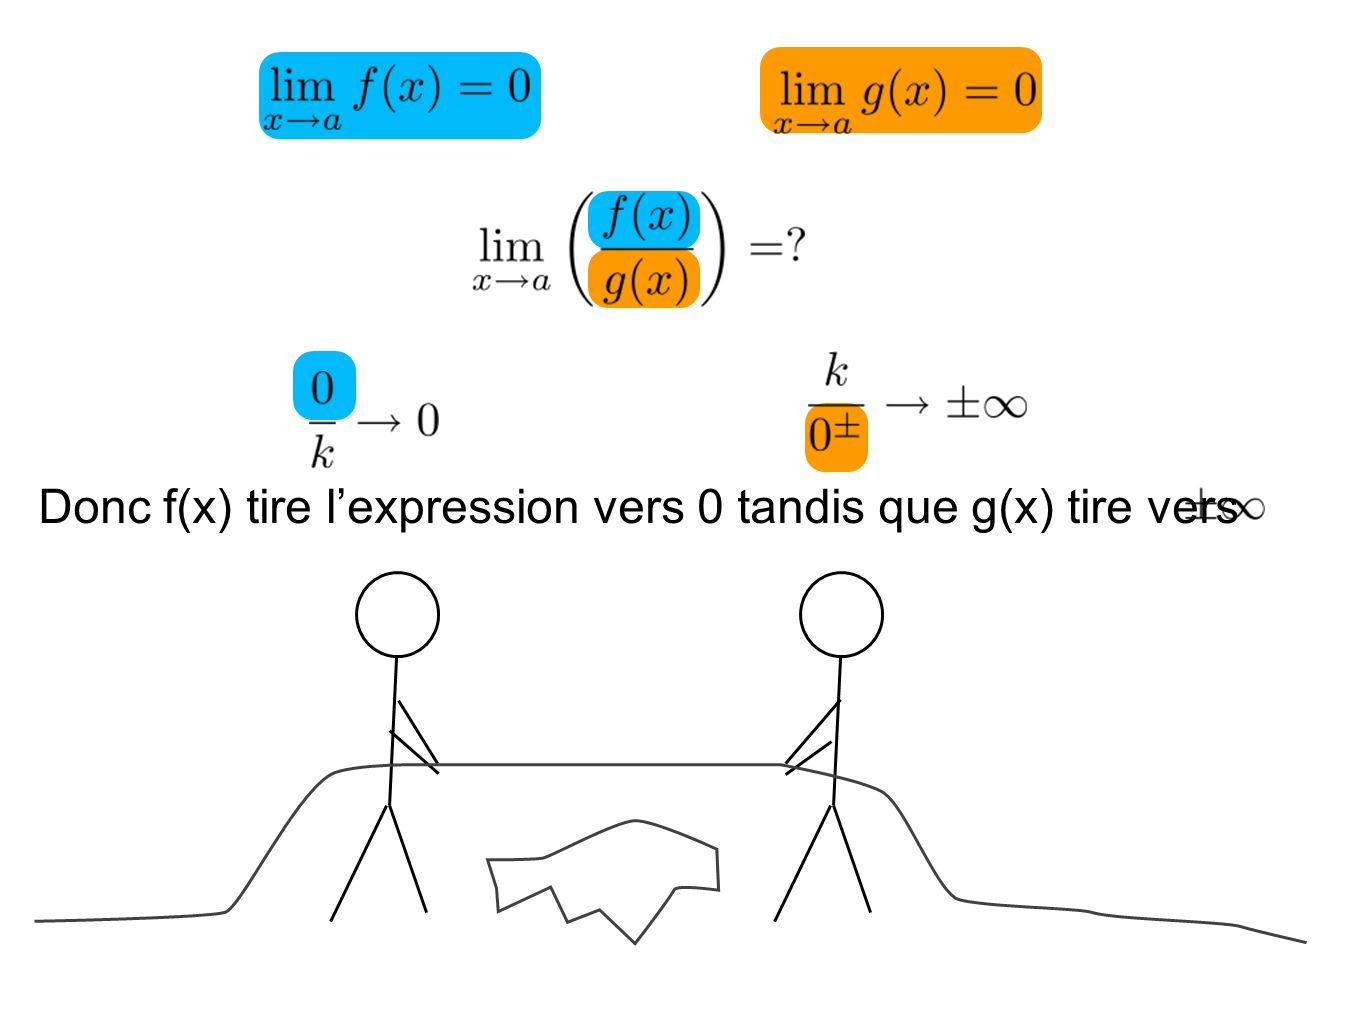 Donc f(x) tire l'expression vers 0 tandis que g(x) tire vers